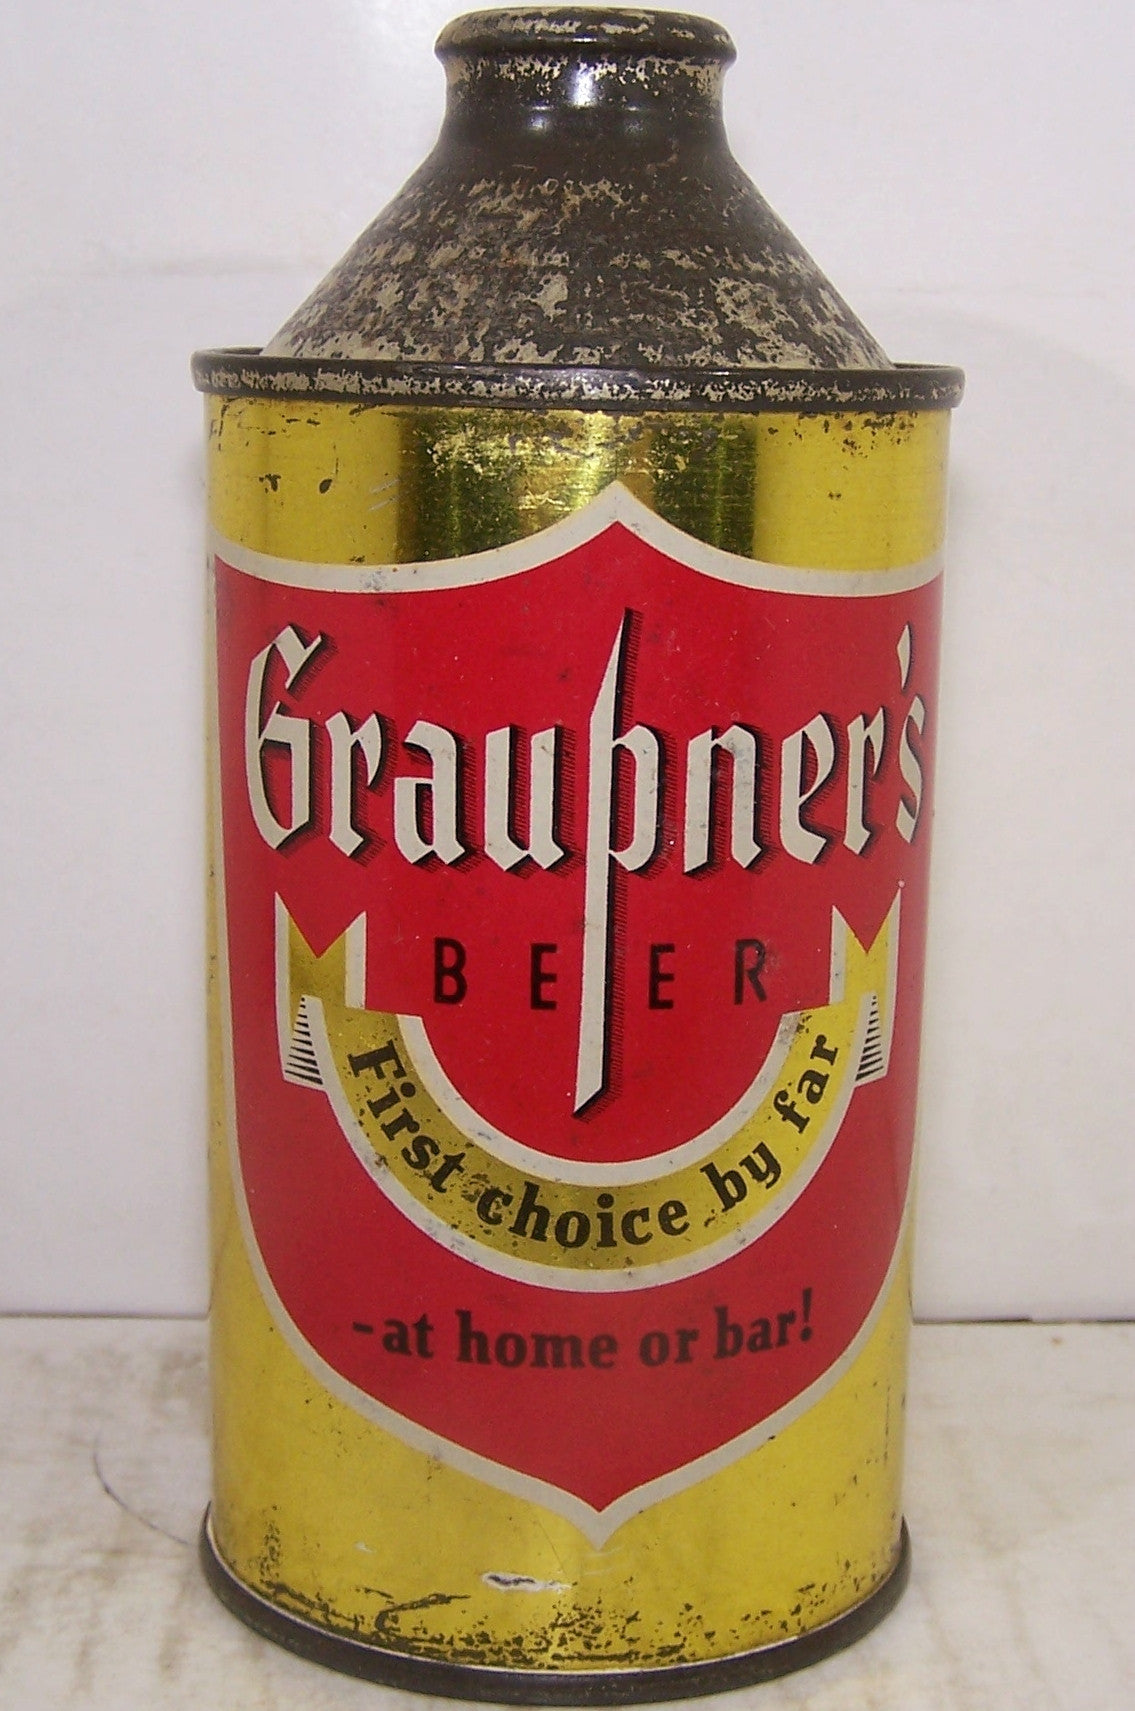 Graupner's Beer, At Home or Bar! USBC 167-28, Grade 1/1- Sold on 11/04/17